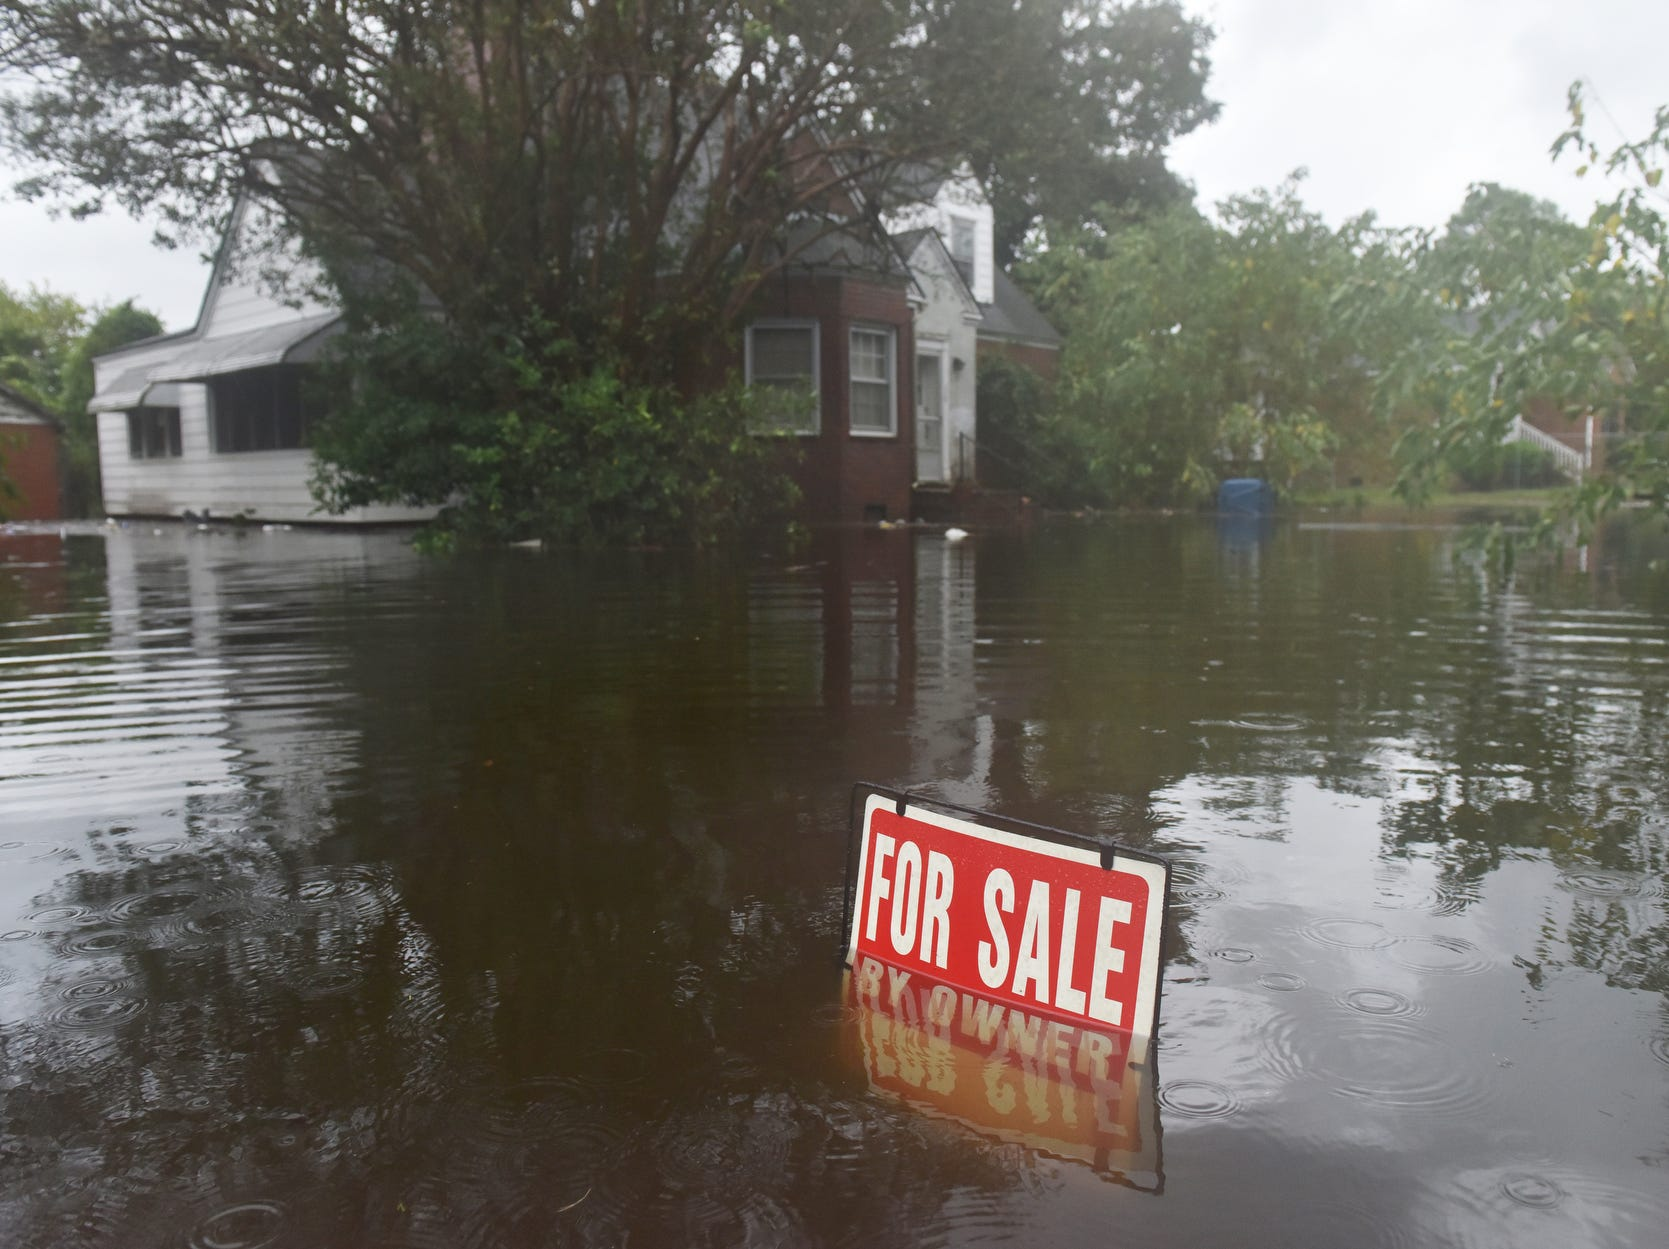 A home for sale sits in high water on W 6th St after Hurricane Florence brought heavy rains to Washington, N.C. on Friday.